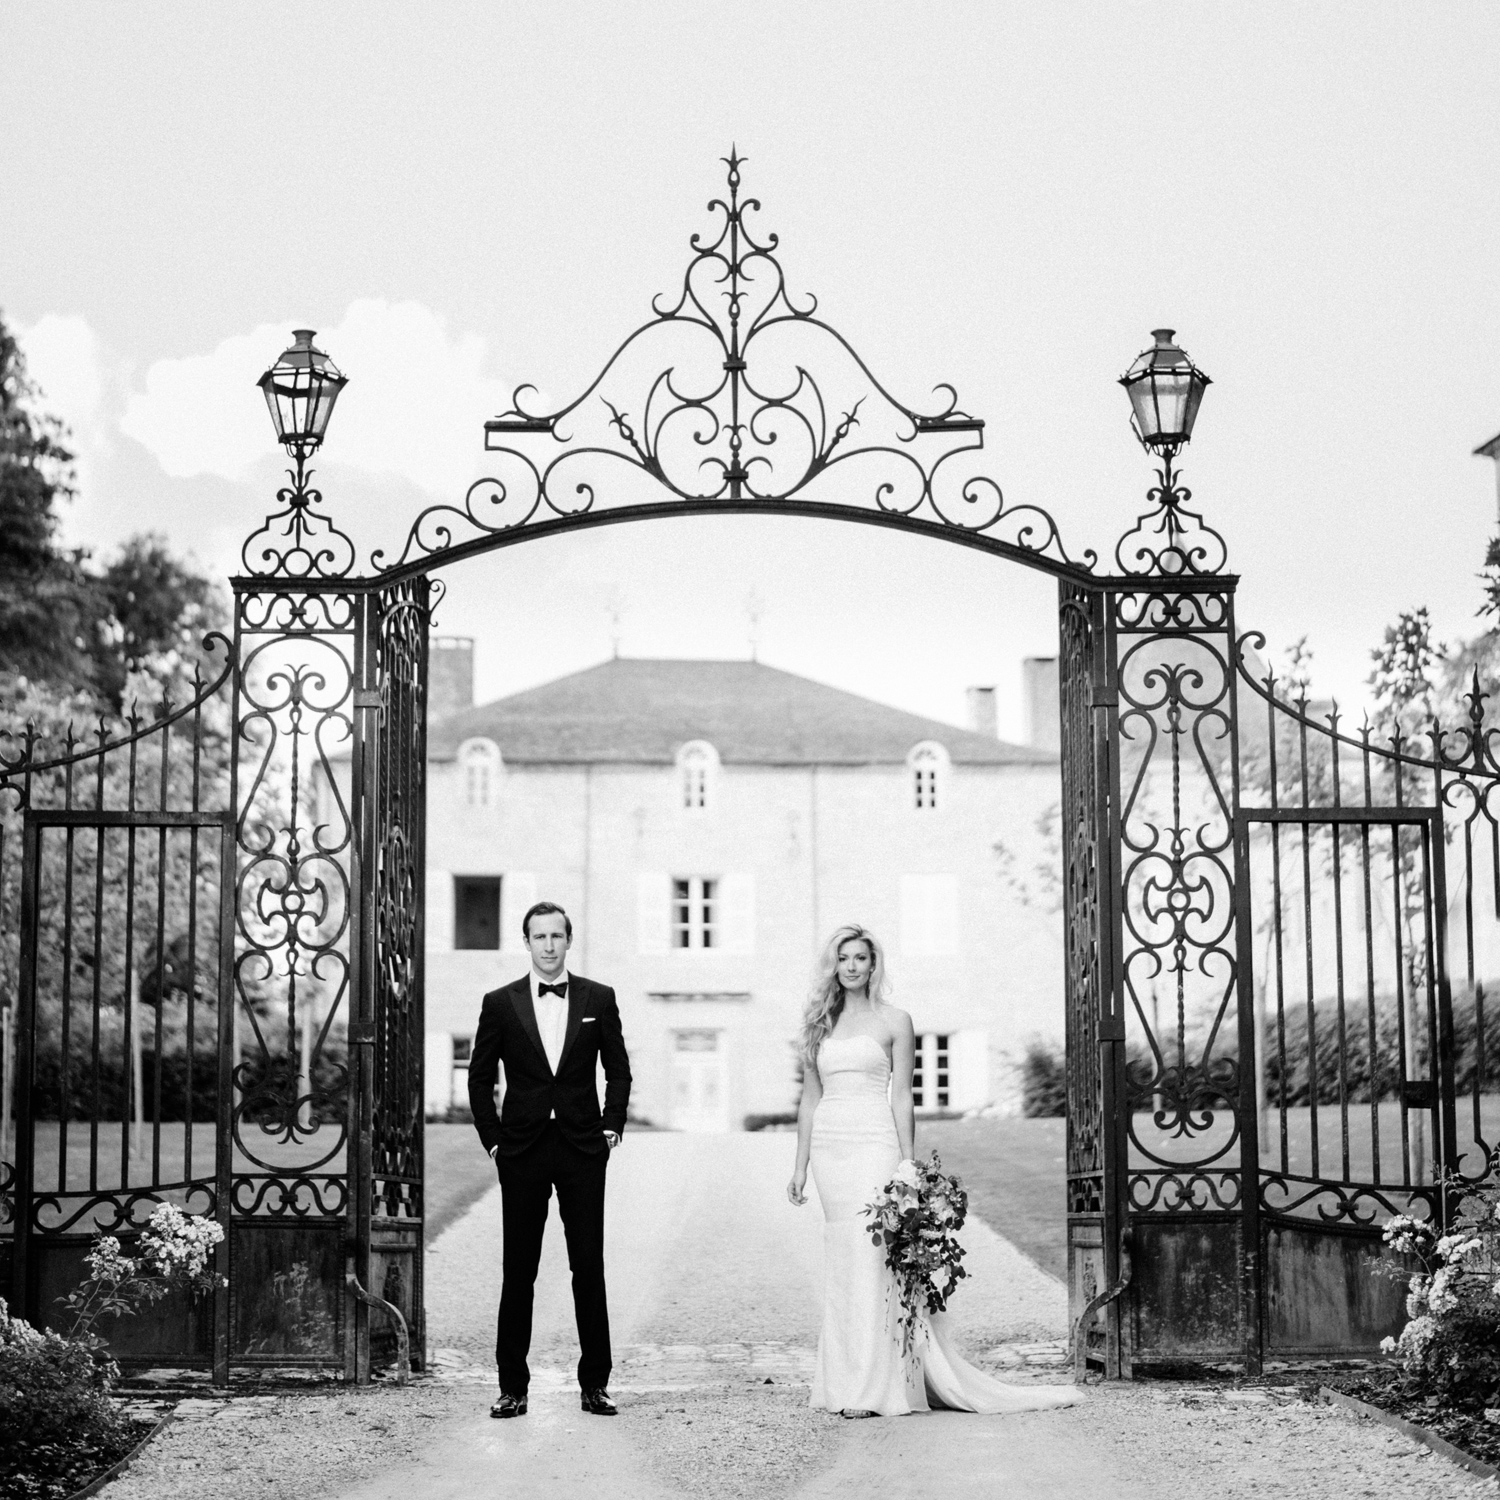 106-french-chateau-destination-wedding-south-france-film-photographer-ryan-flynn.jpg